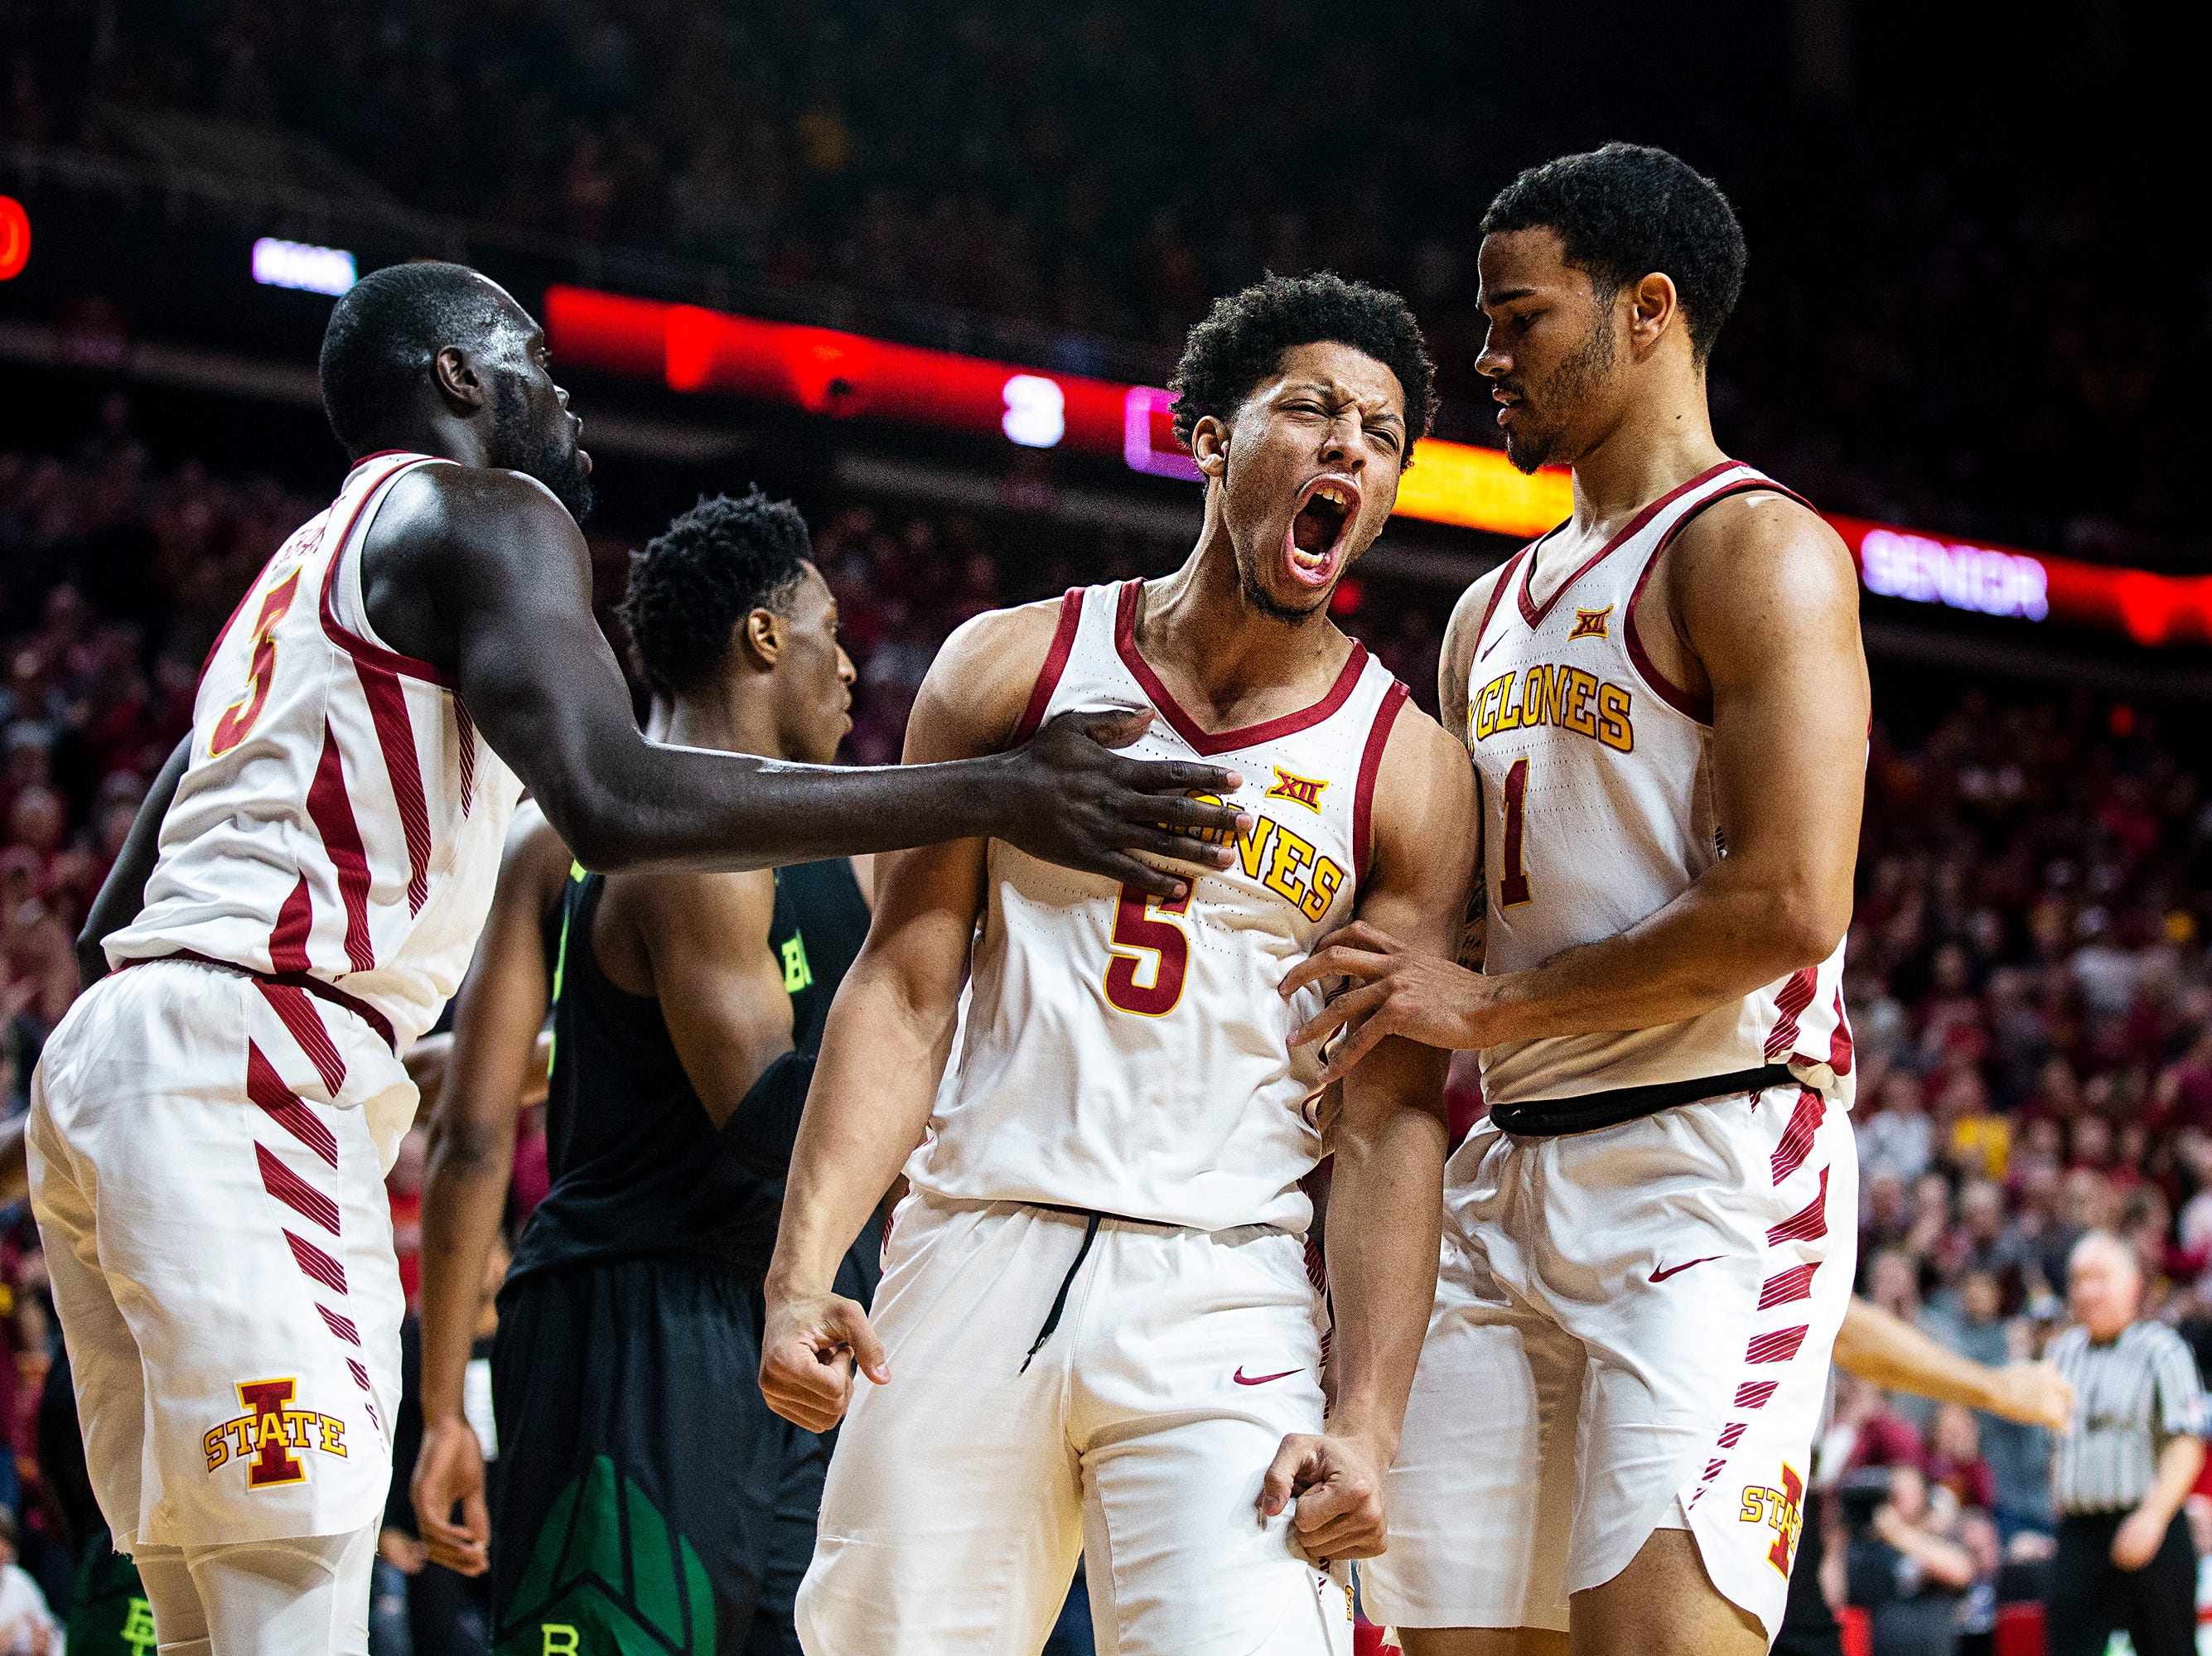 Iowa State's Lindell Wigginton cheers after Iowa State's Marial Shayok is fouled on a lay-up during the Iowa State men's basketball game against Baylor on Tuesday, Feb. 19, 2019, in Hilton Coliseum. The Cyclones fell to the Bears 69-73.